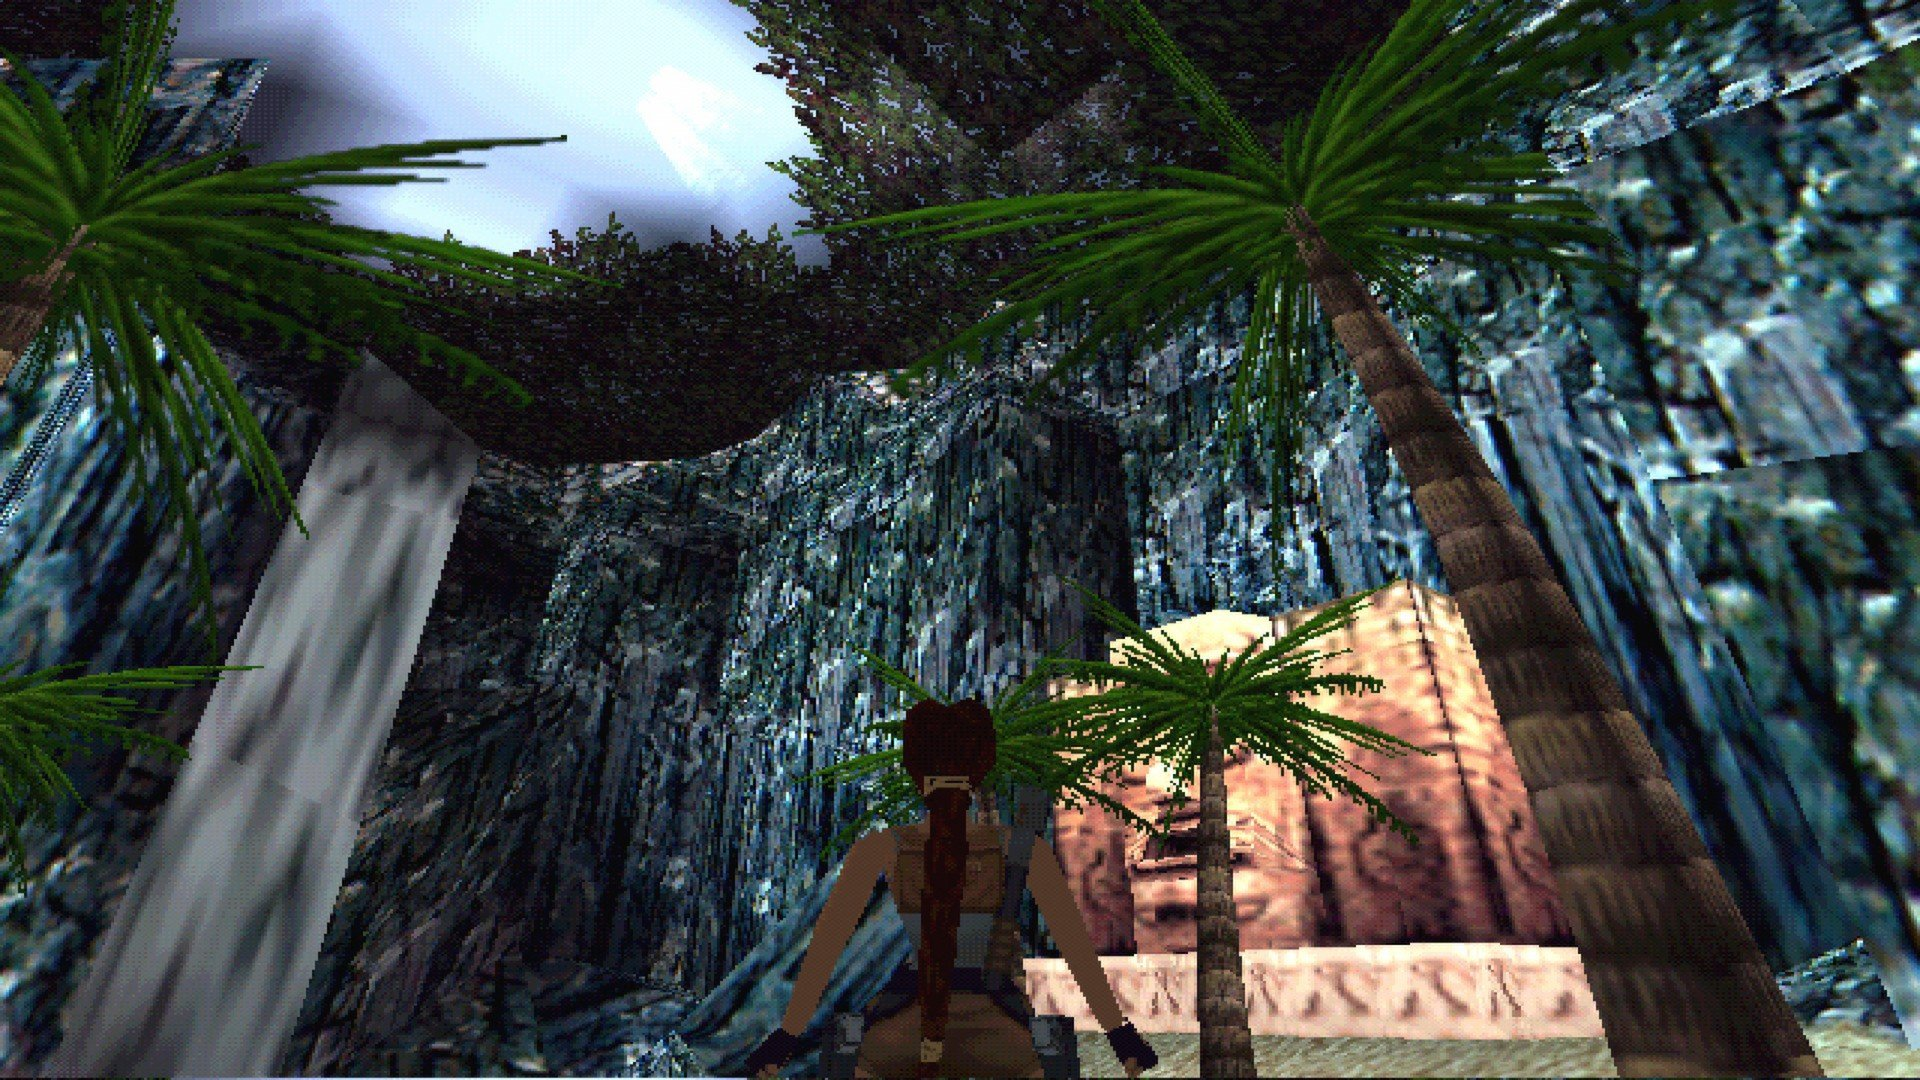 Tomb Raider 1-3 remasters are coming to PC, free if you own the original '90s versions screenshot